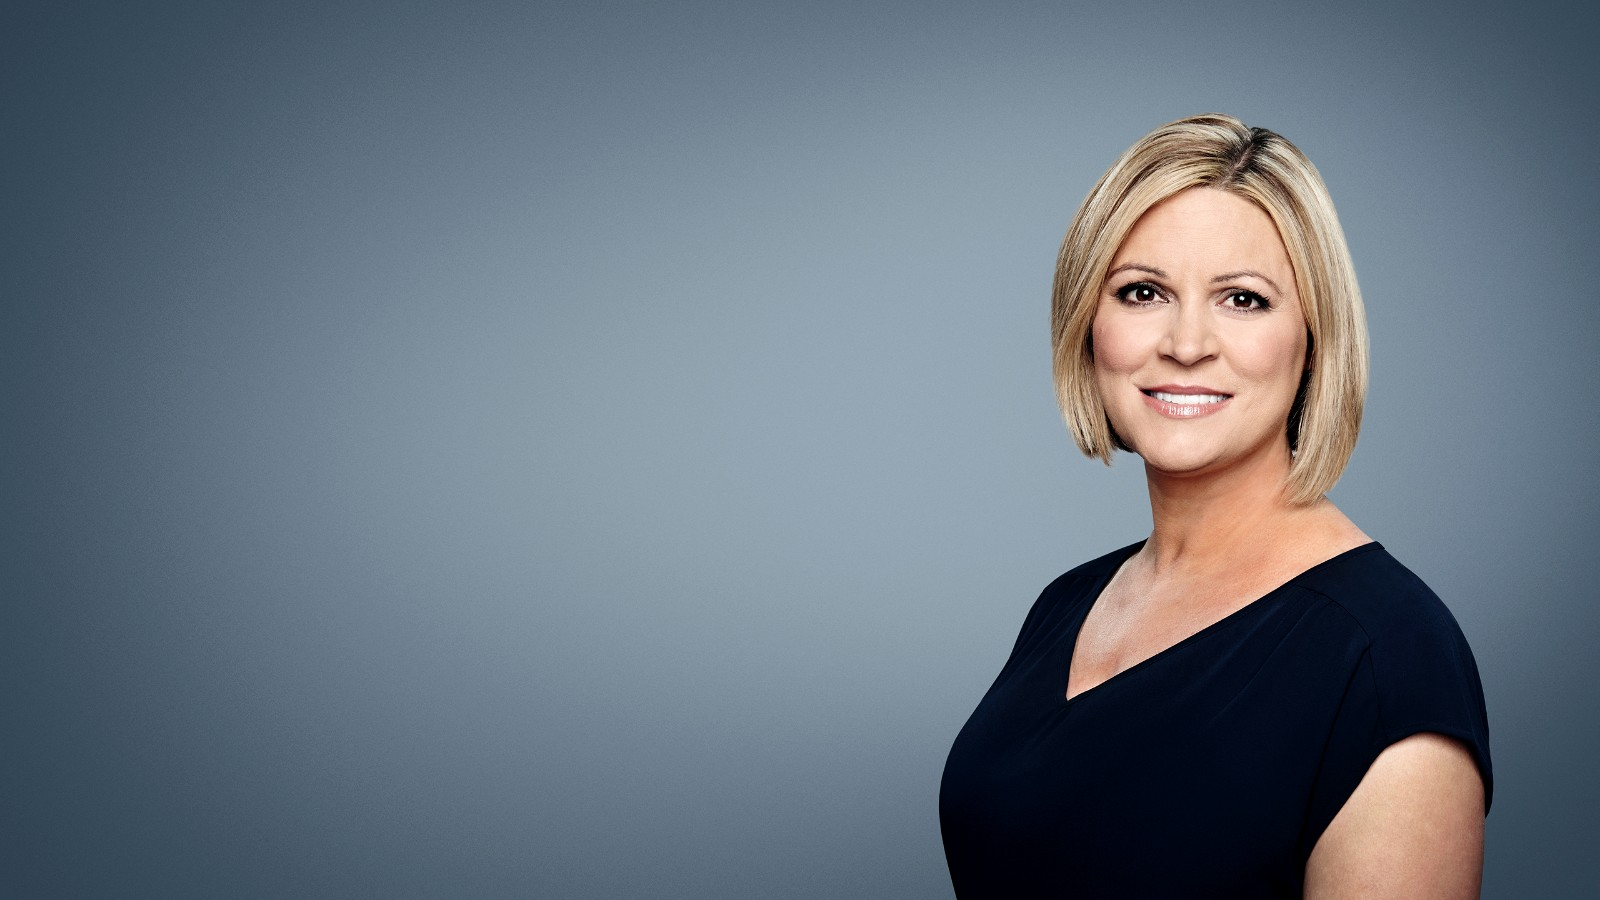 Cnn Profiles Jennifer Westhoven Cnn